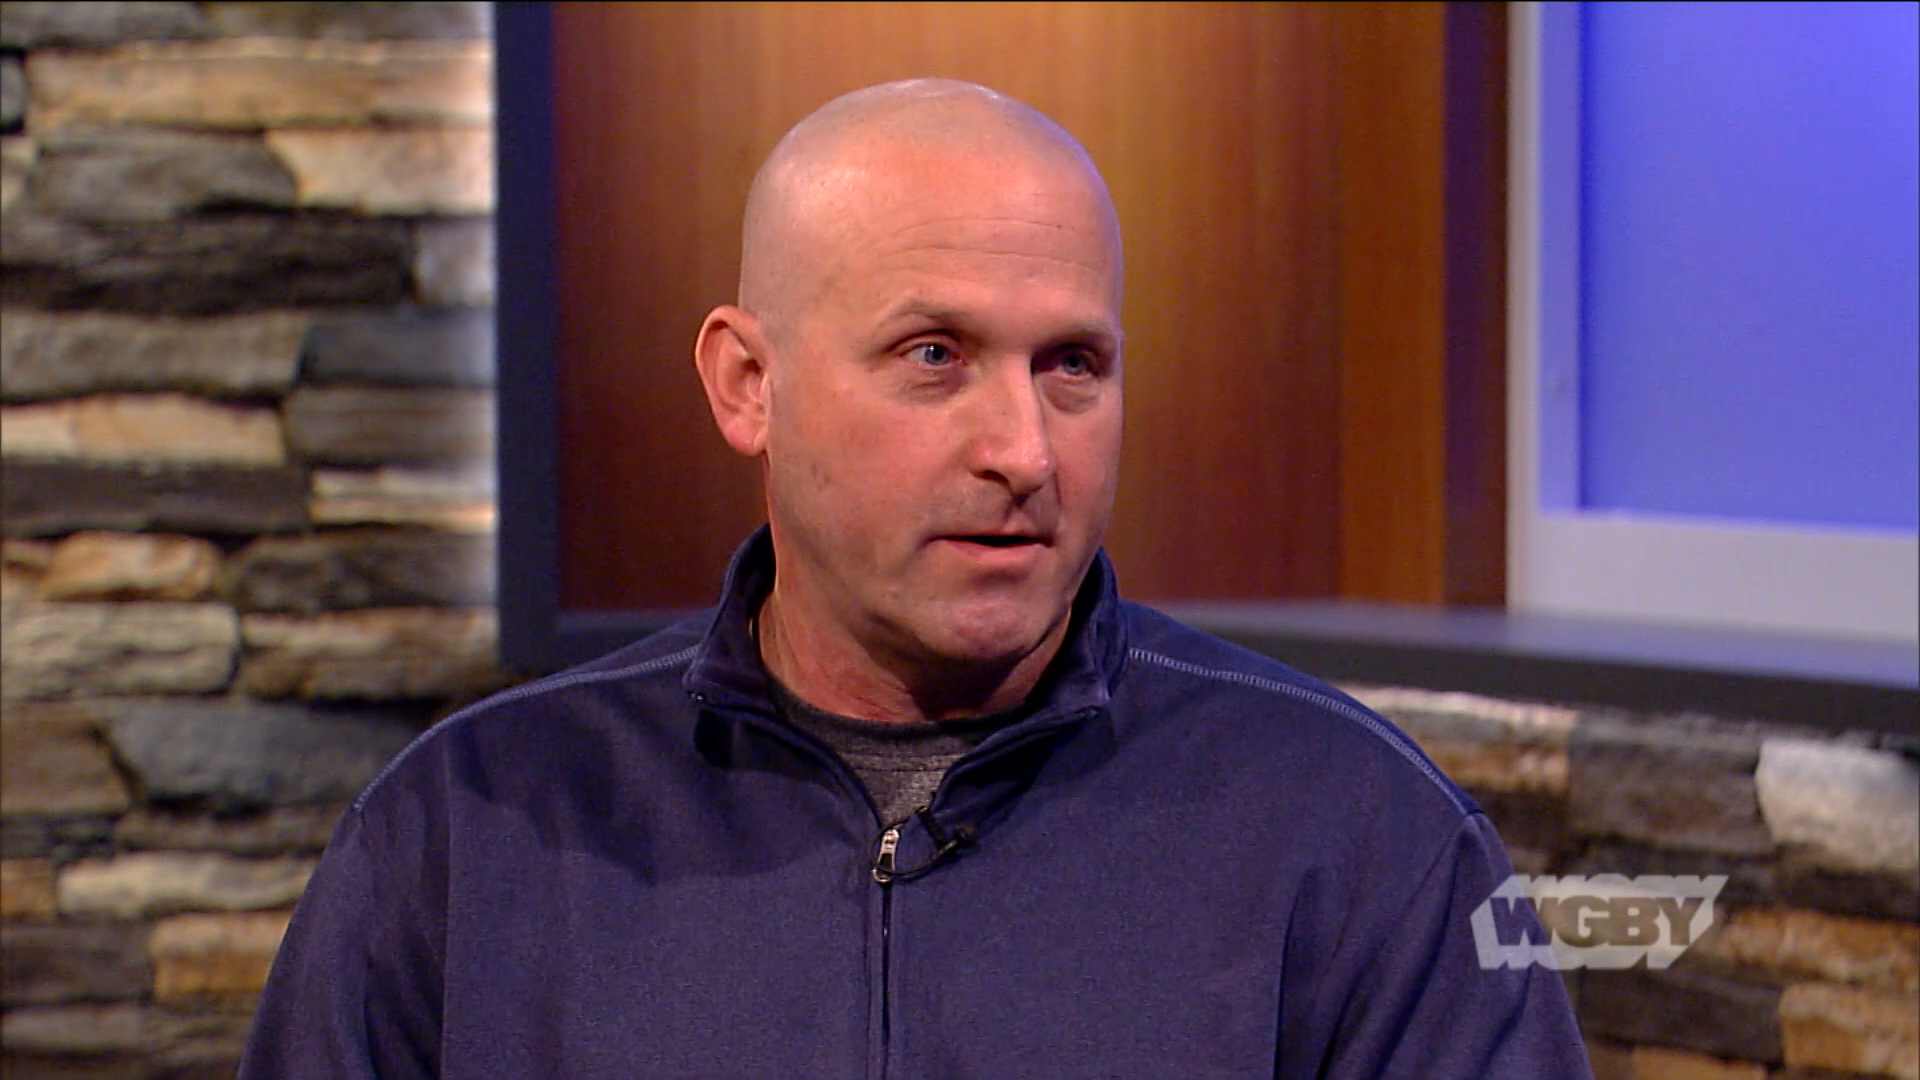 WATCH: Peer recovery coach Mark Jachym shares how his personal experience with addiction shapes his work helping others recover from opioid abuse.